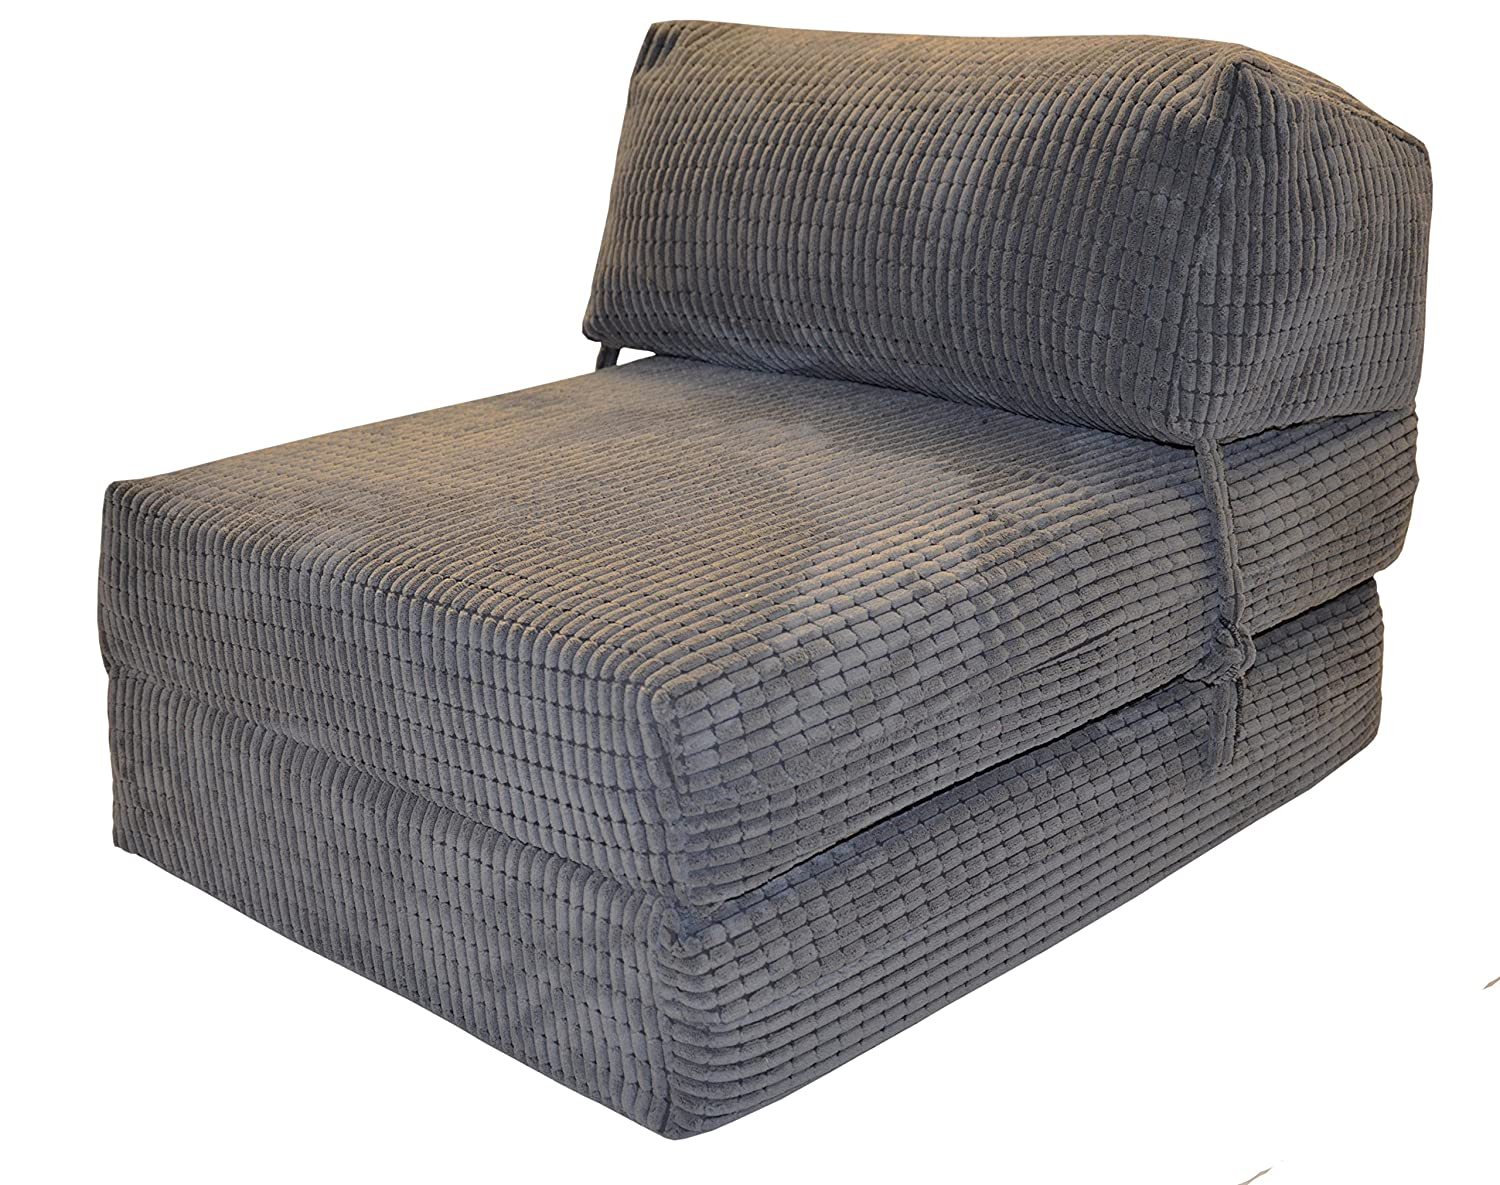 Single sofa bed chair uk - Jazz Chairbed Charcoal Da Vinci Deluxe Single Chair Bed Futon